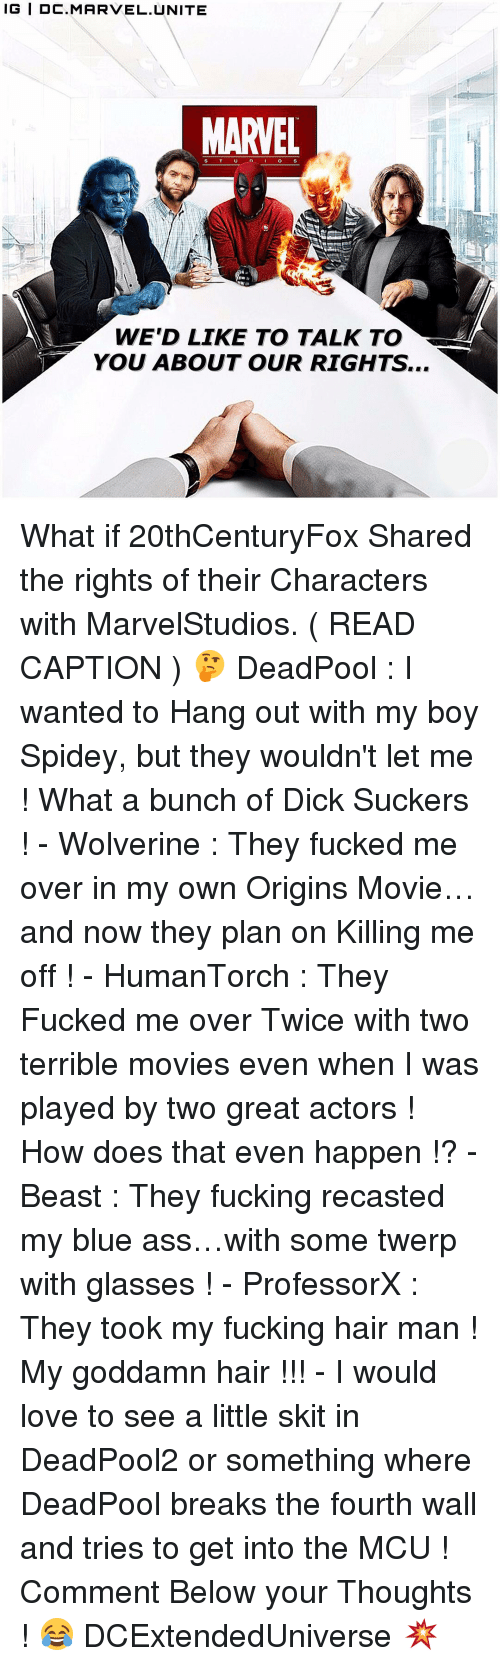 breaking the fourth wall: IG IDC. MARVEL UNITE  MARVEL  WE'D LIKE TO TALK TO  YOU ABOUT OUR RIGHTS... What if 20thCenturyFox Shared the rights of their Characters with MarvelStudios. ( READ CAPTION ) 🤔 DeadPool : I wanted to Hang out with my boy Spidey, but they wouldn't let me ! What a bunch of Dick Suckers ! - Wolverine : They fucked me over in my own Origins Movie…and now they plan on Killing me off ! - HumanTorch : They Fucked me over Twice with two terrible movies even when I was played by two great actors ! How does that even happen !? - Beast : They fucking recasted my blue ass…with some twerp with glasses ! - ProfessorX : They took my fucking hair man ! My goddamn hair !!! - I would love to see a little skit in DeadPool2 or something where DeadPool breaks the fourth wall and tries to get into the MCU ! Comment Below your Thoughts ! 😂 DCExtendedUniverse 💥